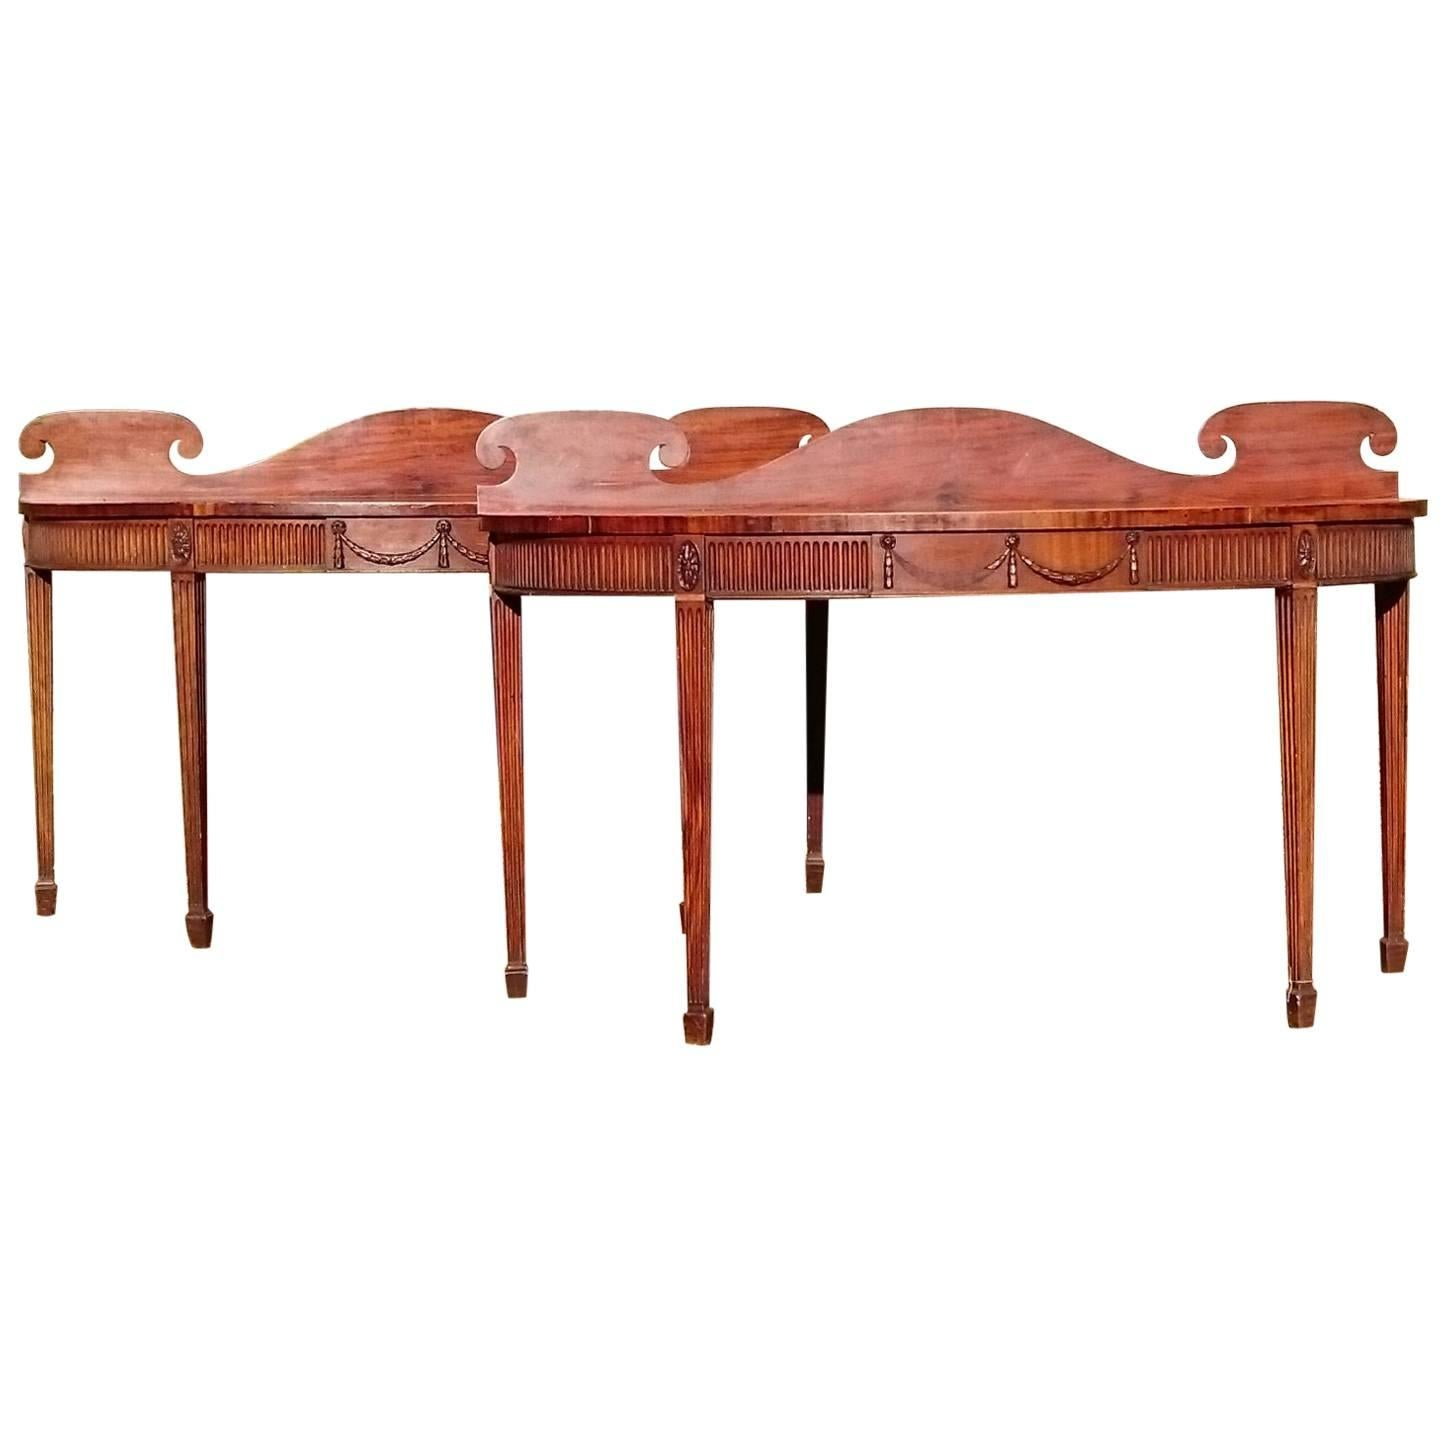 Pair of Early 19th Century George III Period Mahogany Console Serving Tables